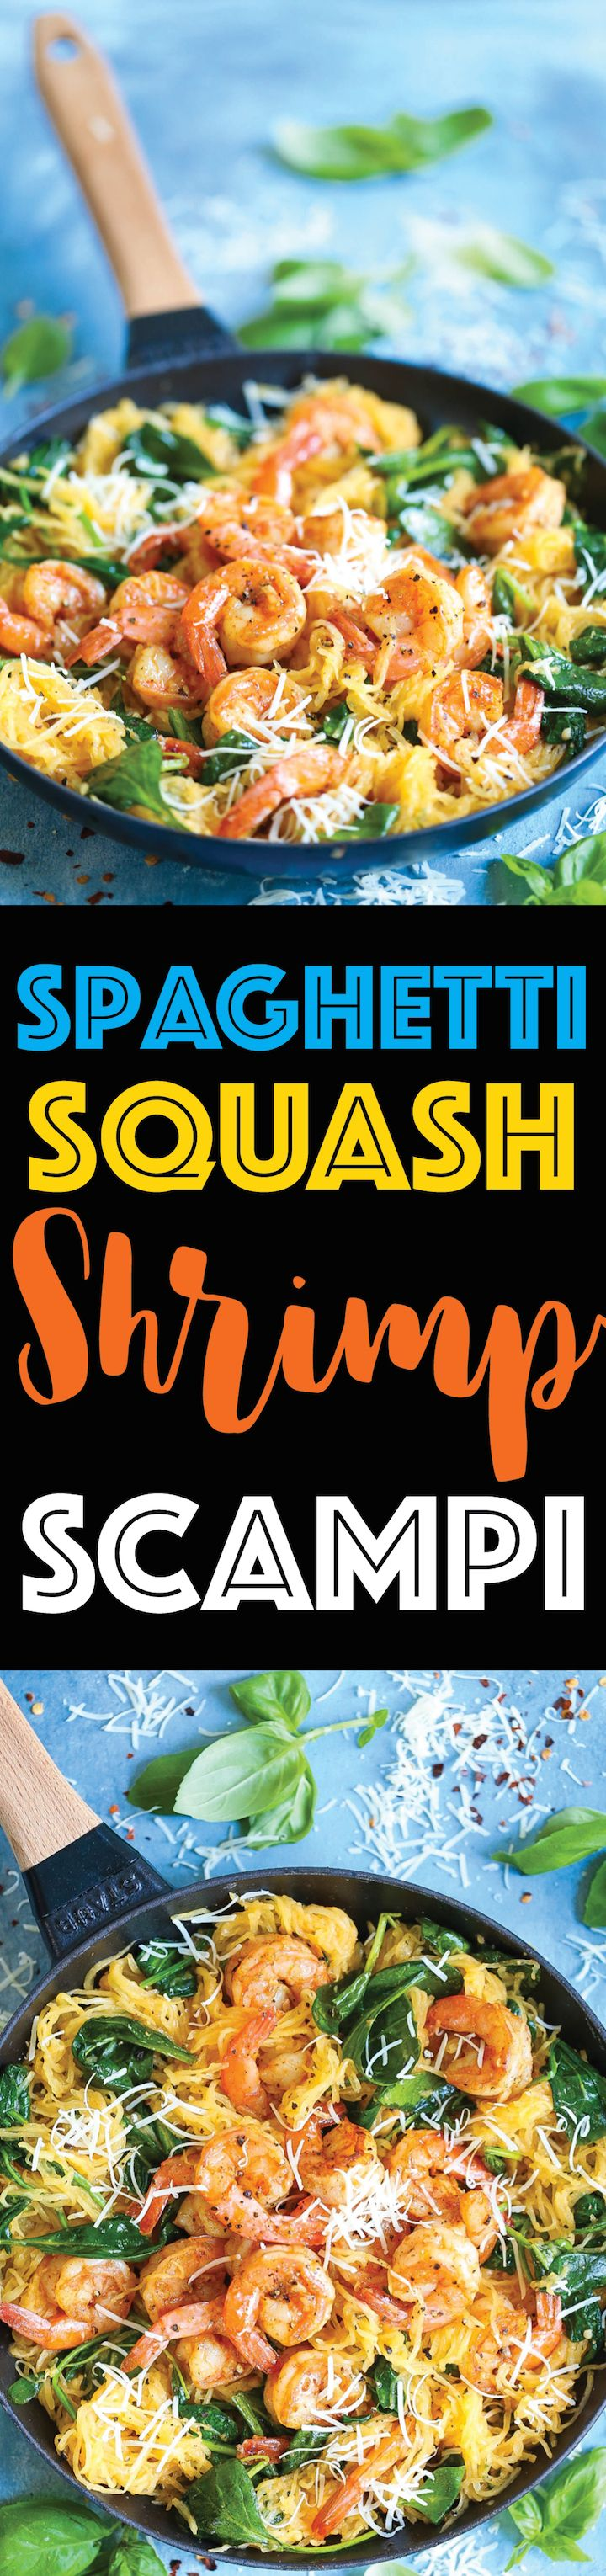 Shrimp Scampi Spaghetti Squash - Everyone's favorite shrimp scampi with a low-carb, healthier alternative to pasta using spaghetti squash! It's still amazingly buttery and garlicky with half the calories!